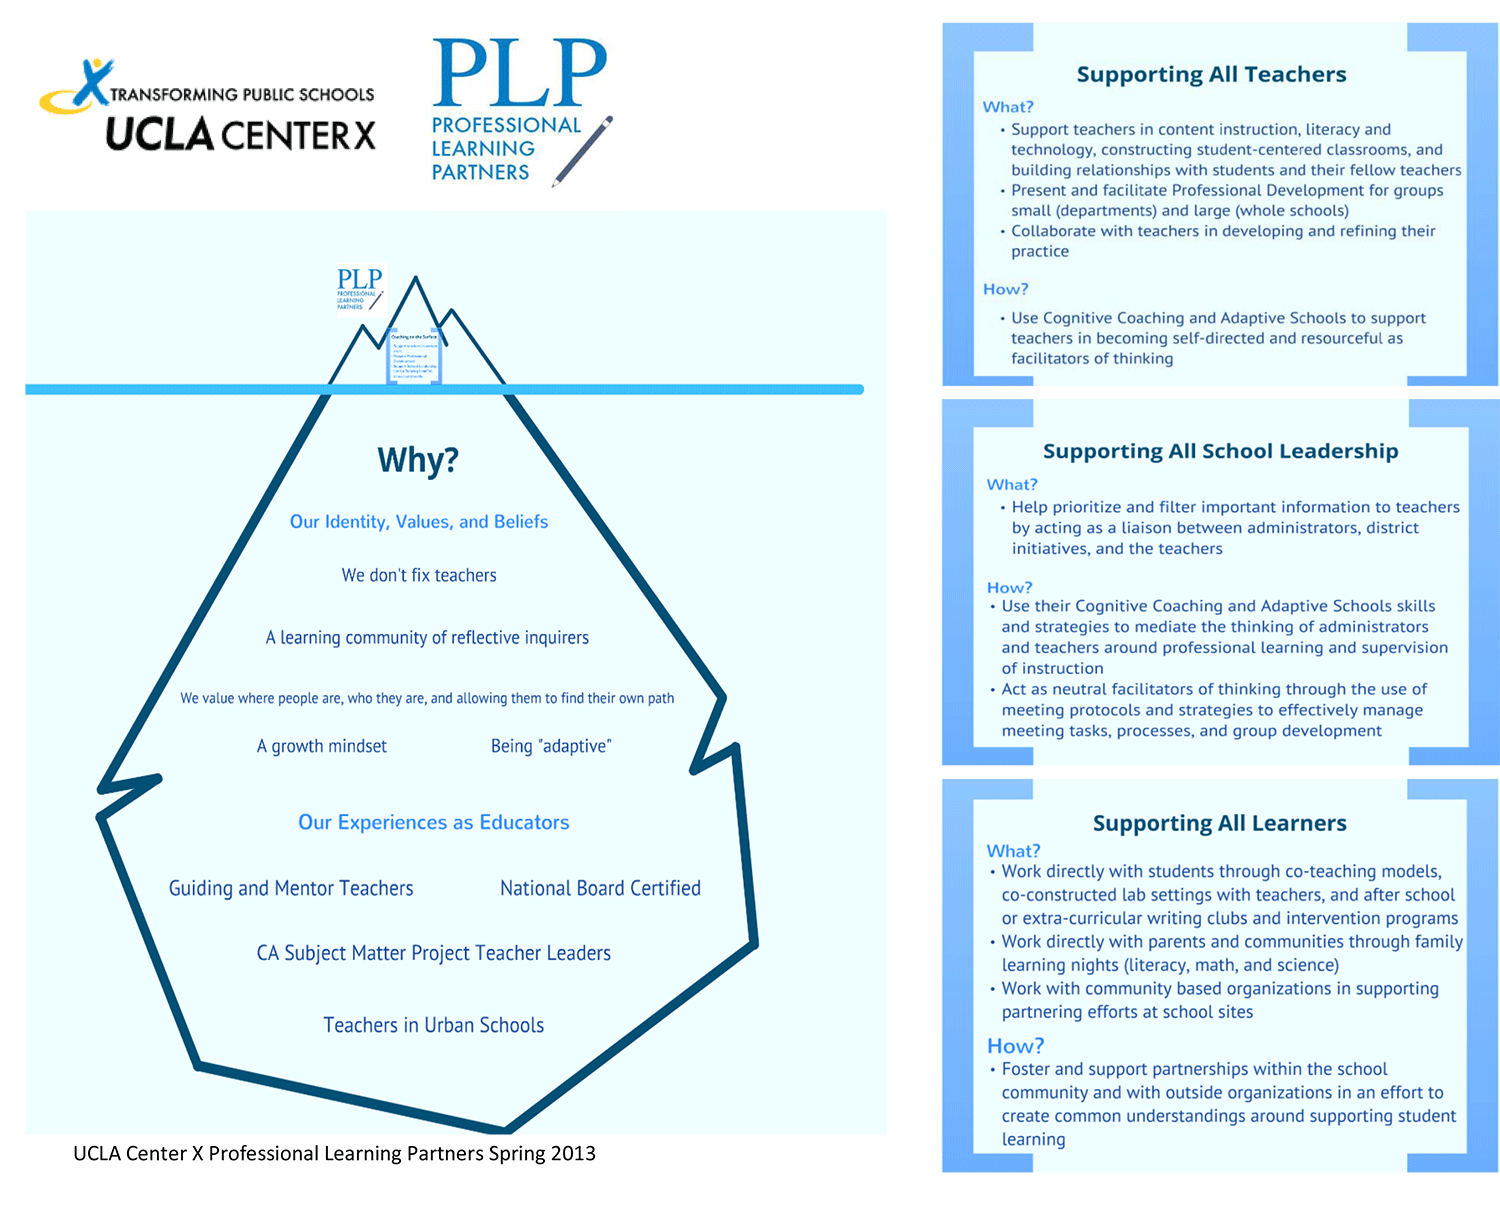 Coaching at Center X as an iceberg